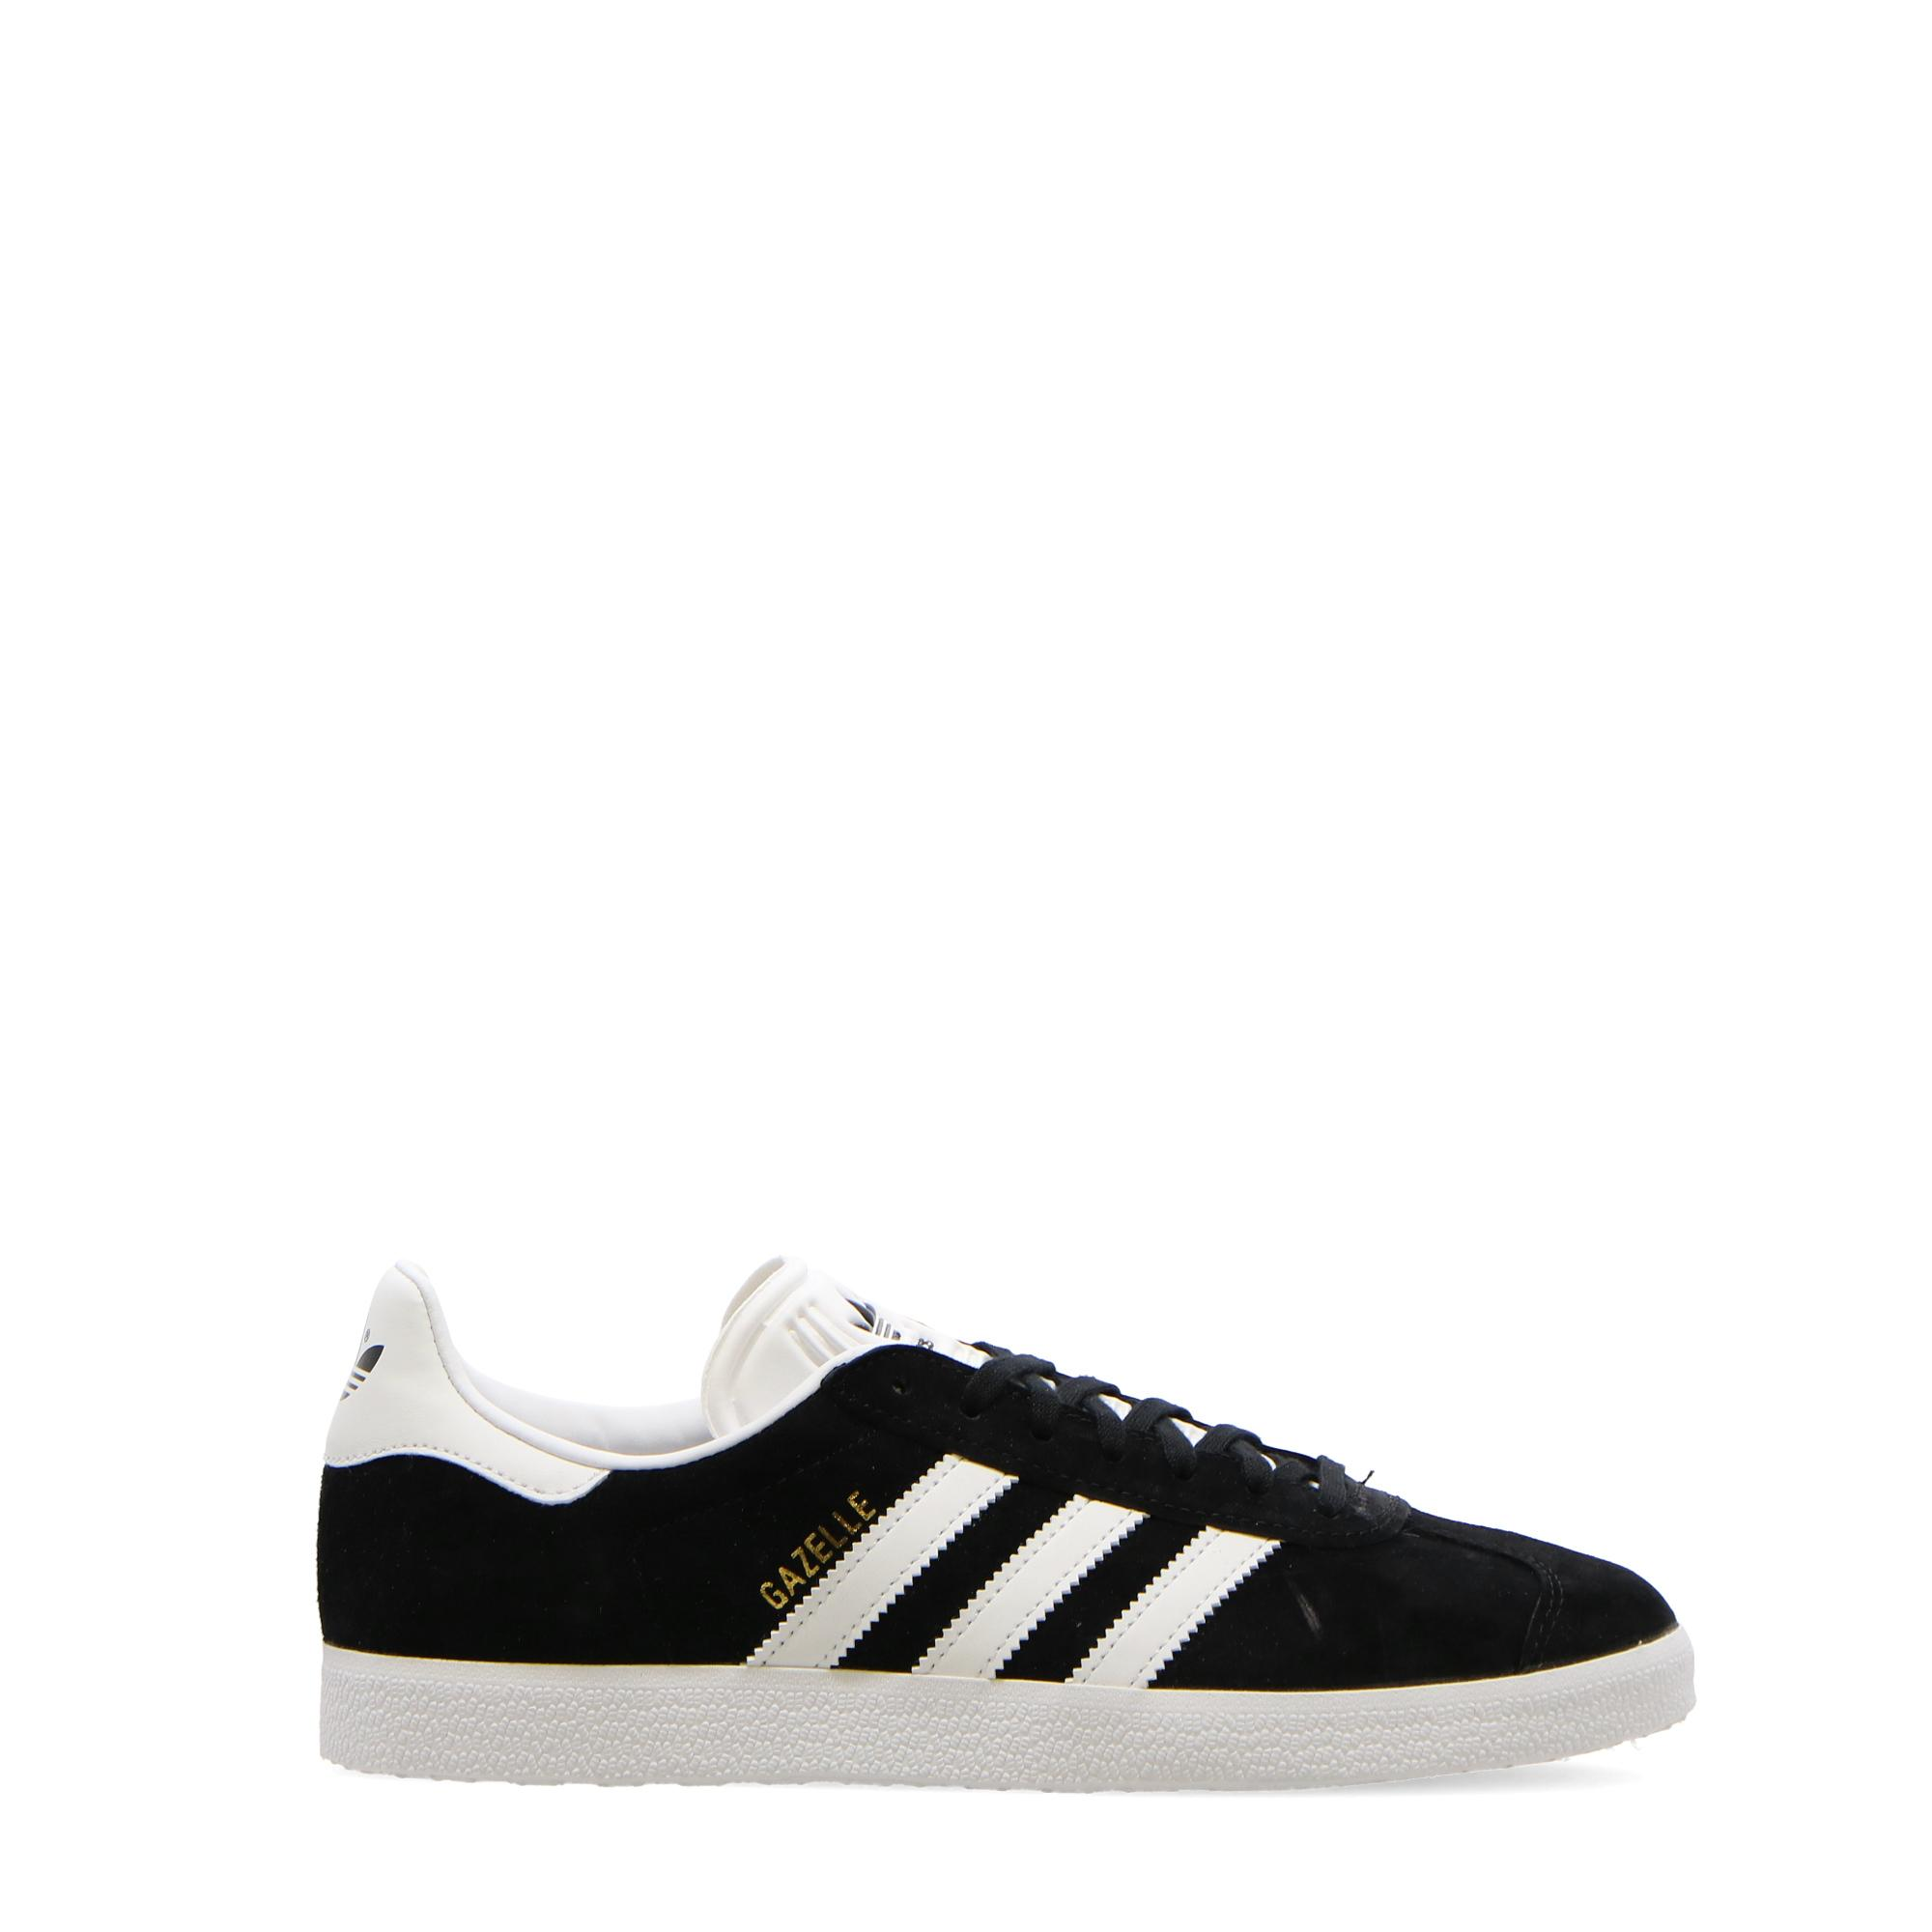 Adidas Gazelle Black white gold